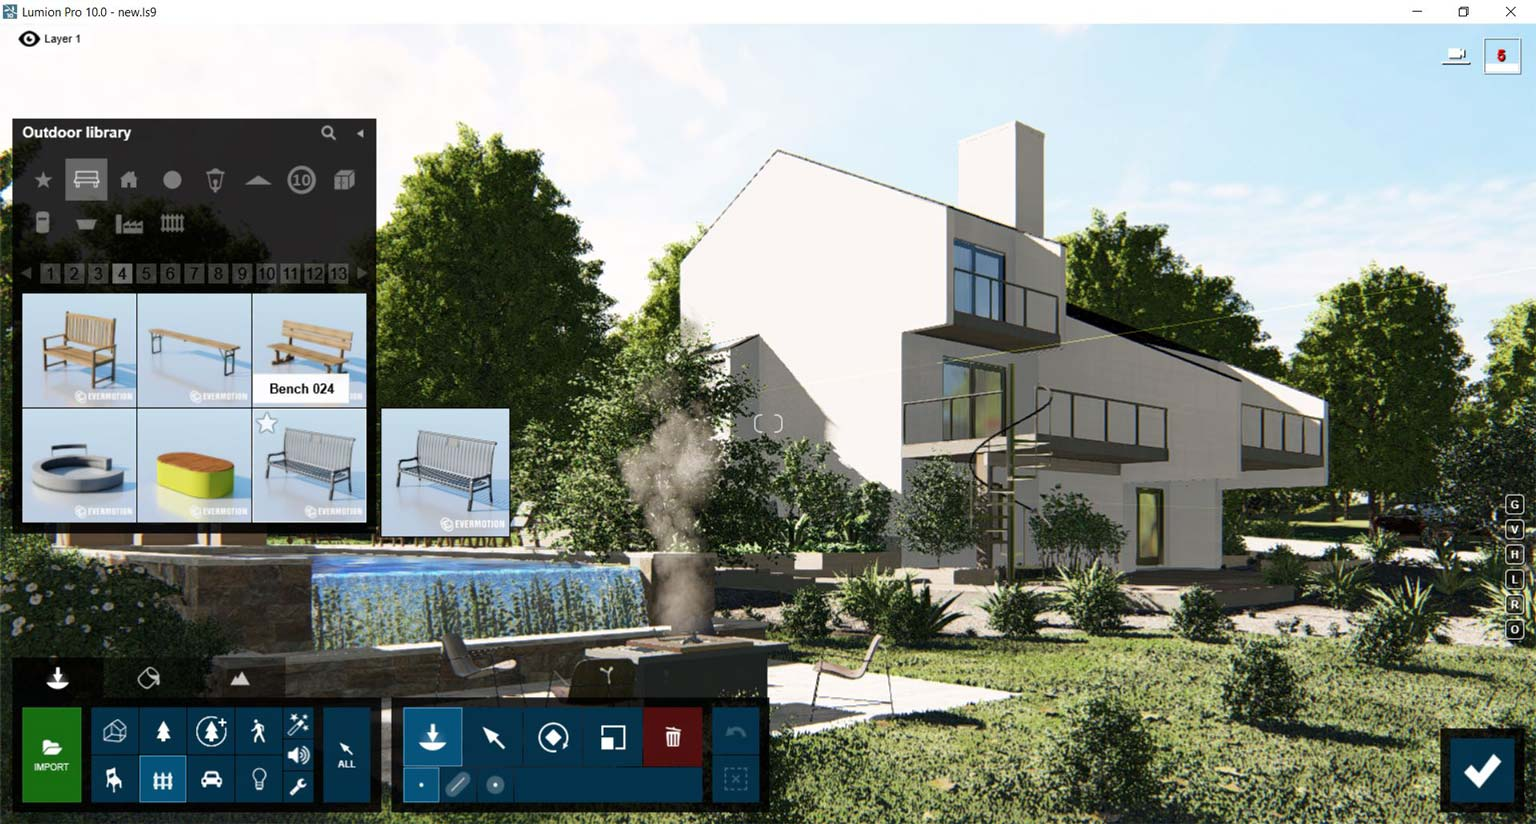 Working with Lumion Pro 10 full license